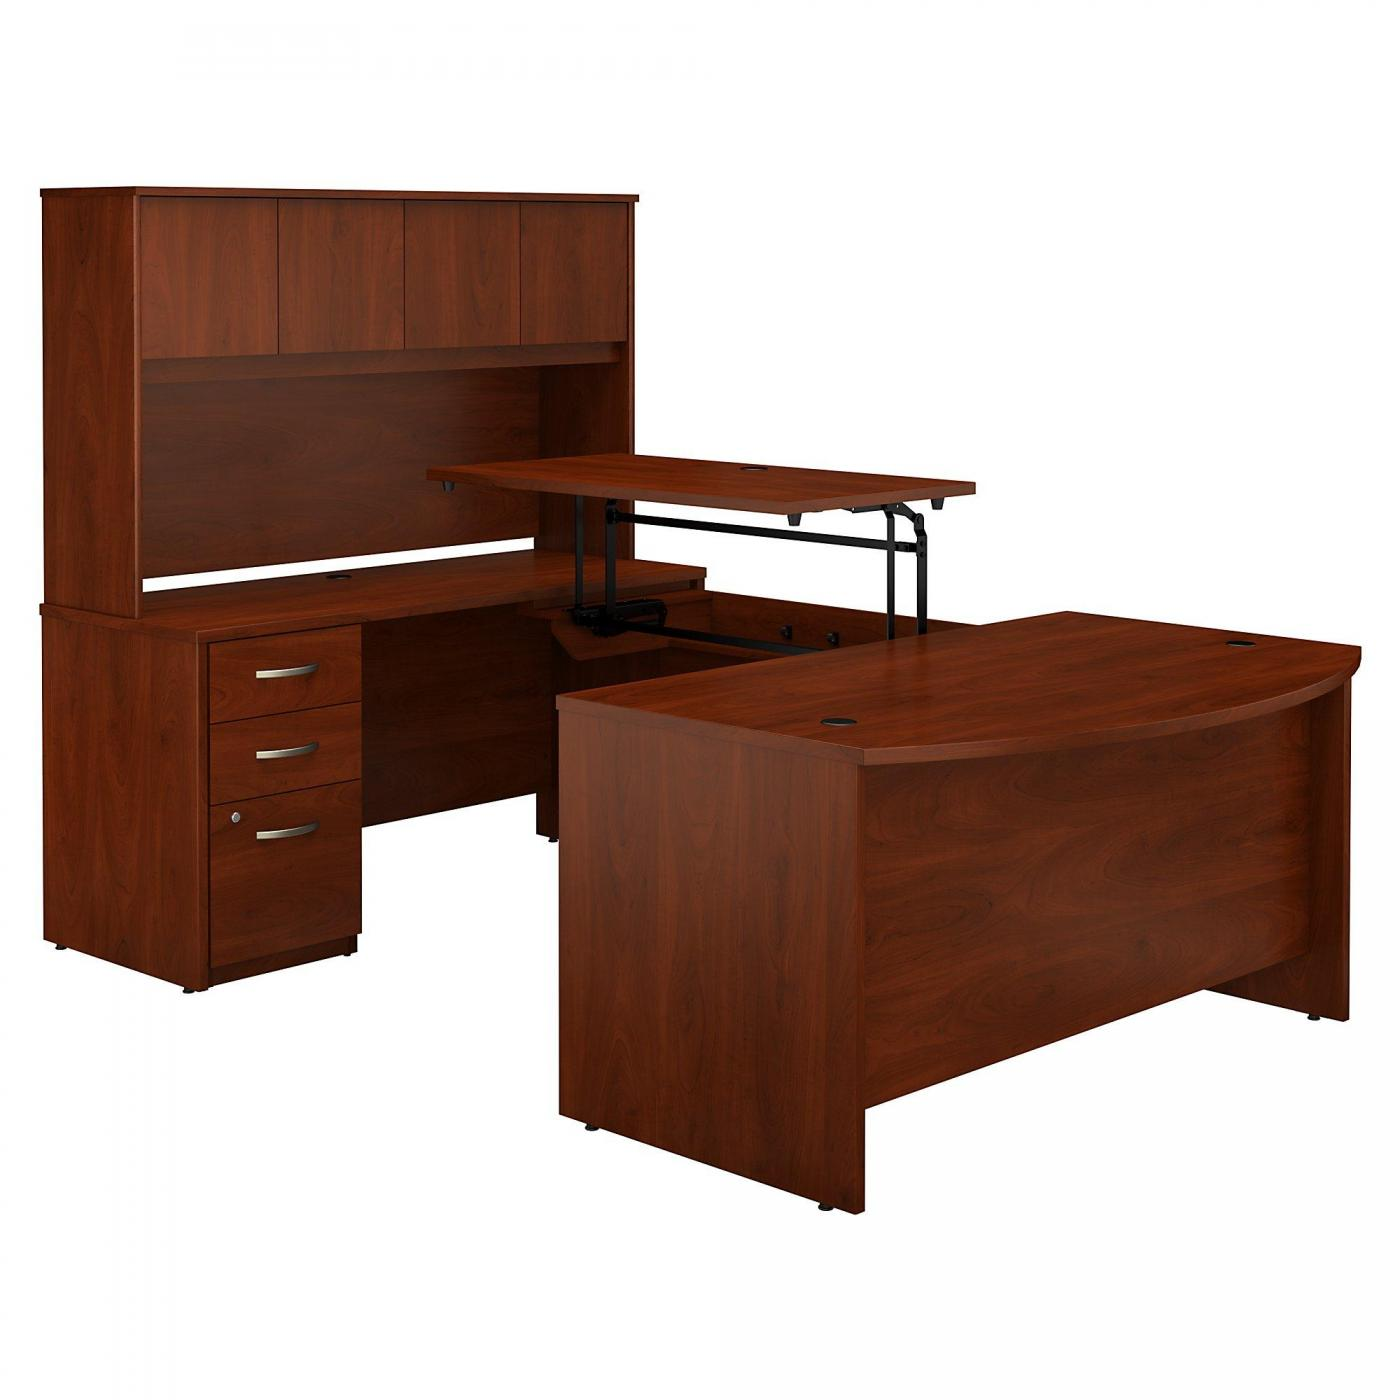 <font color=#c60><b>BUSH BUSINESS FURNITURE SERIES C ELITE 60W X 36D 3 POSITION SIT TO STAND BOW FRONT U SHAPED DESK WITH HUTCH AND 3 DRAWER FILE CABINET. FREE SHIPPING</font></b>